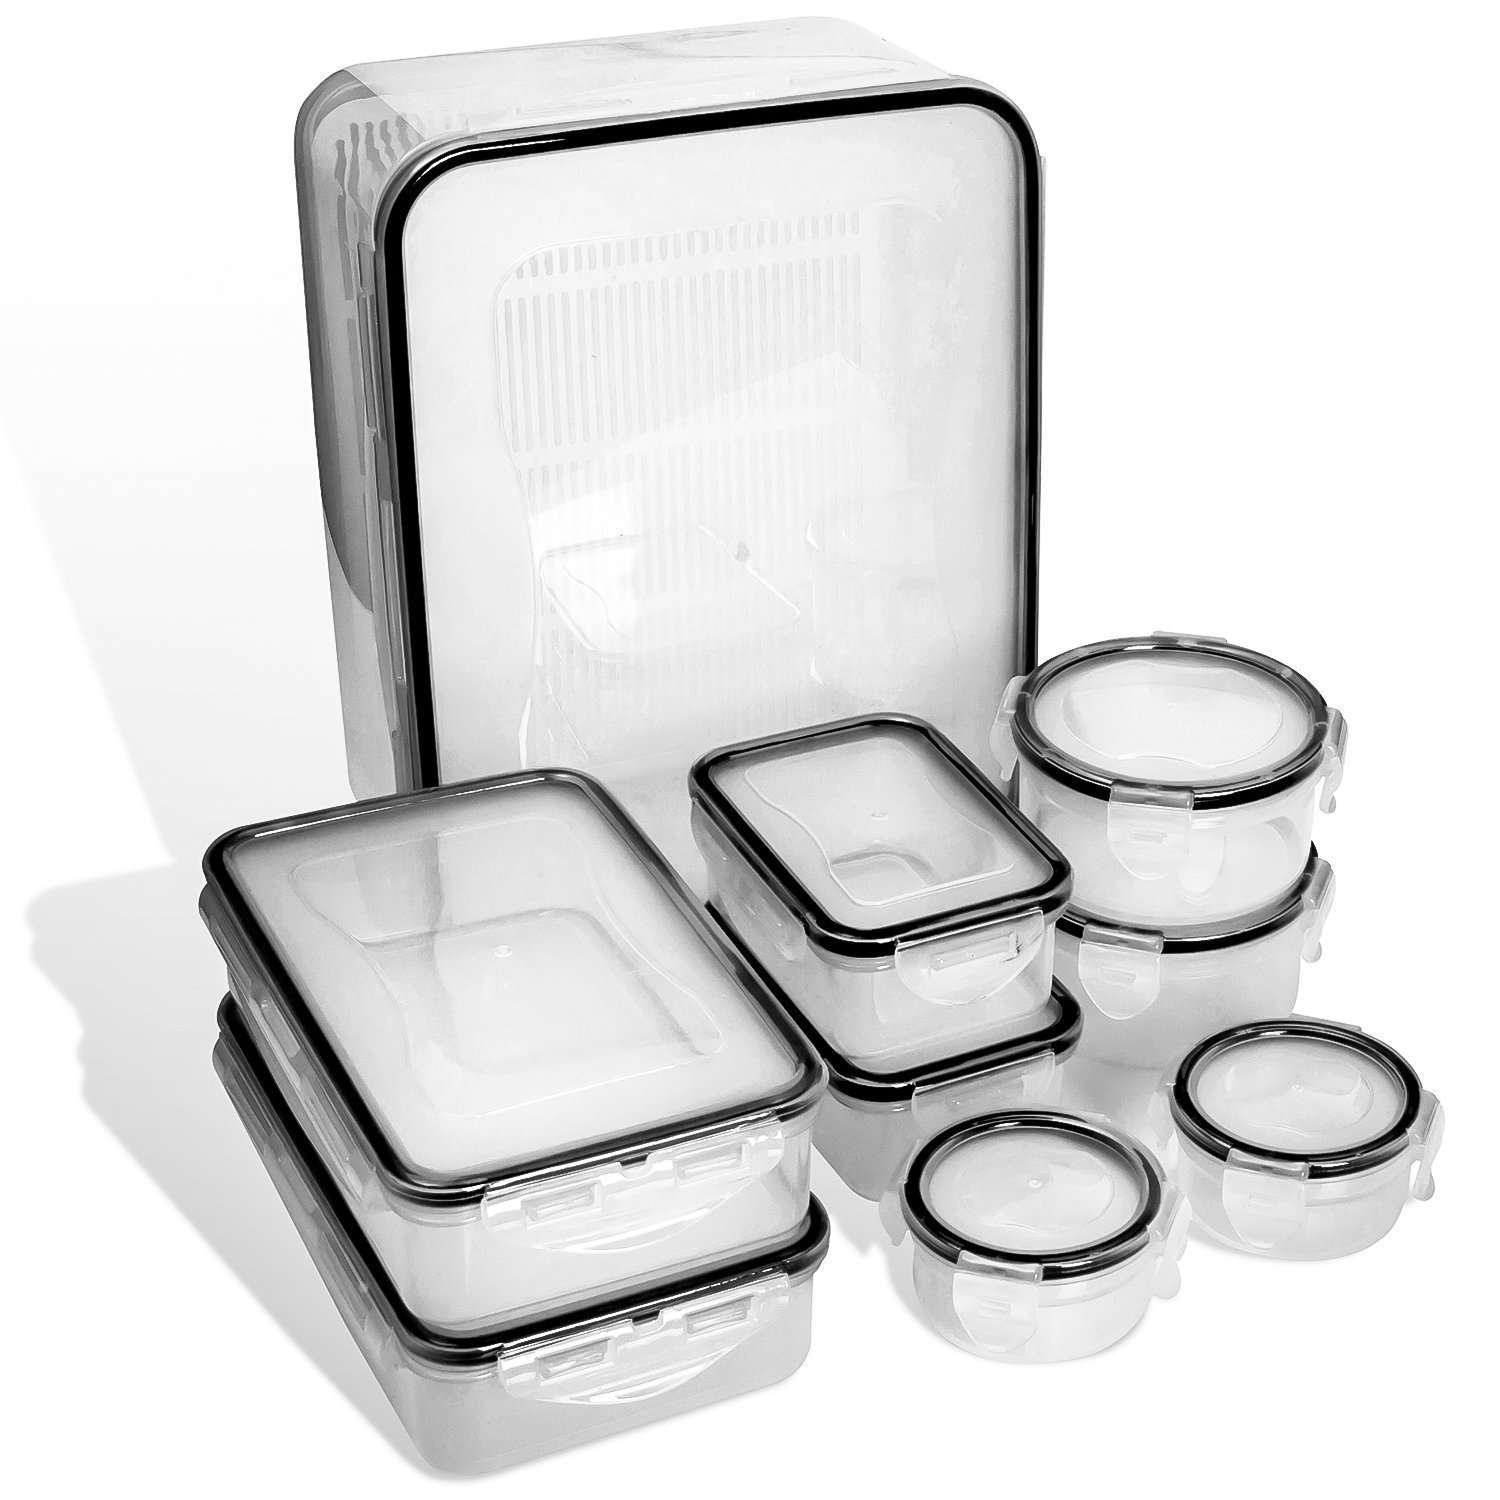 Food Storage Containers with Lids - Airtight Leak Proof Easy Snap Lock and BPA Free Clear Plastic Container Set for Kitchen Use by Fullstar (18 Piece Set) by Fullstar (Image #3)